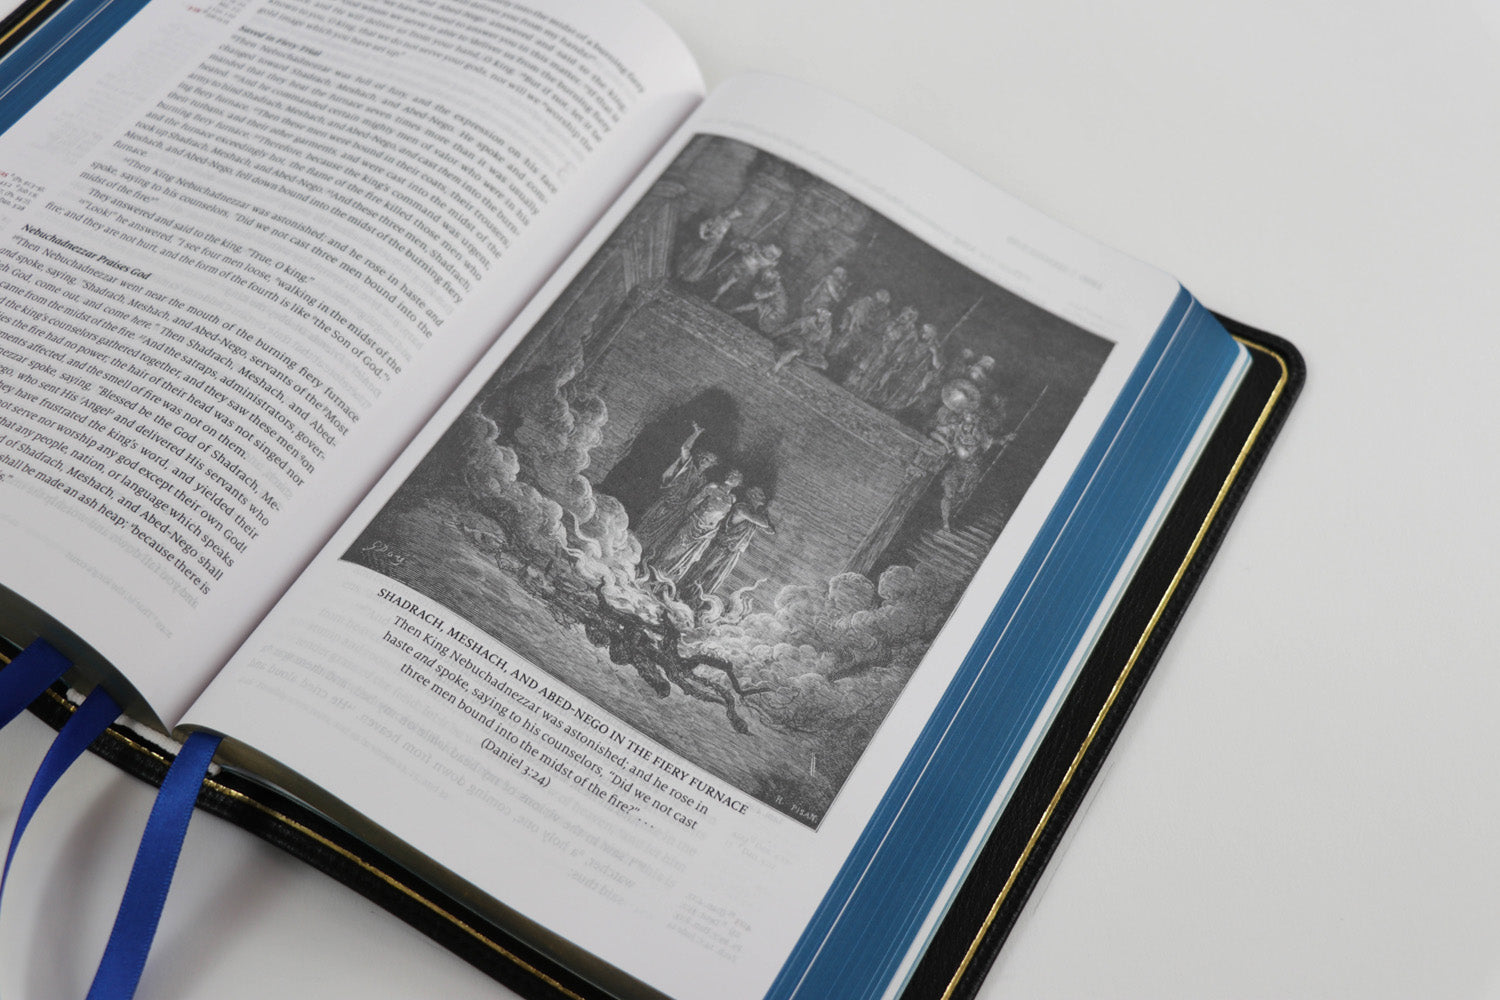 Word of God - Royal Blue Edition - Premium Bible with illustrations from Gustave Dore